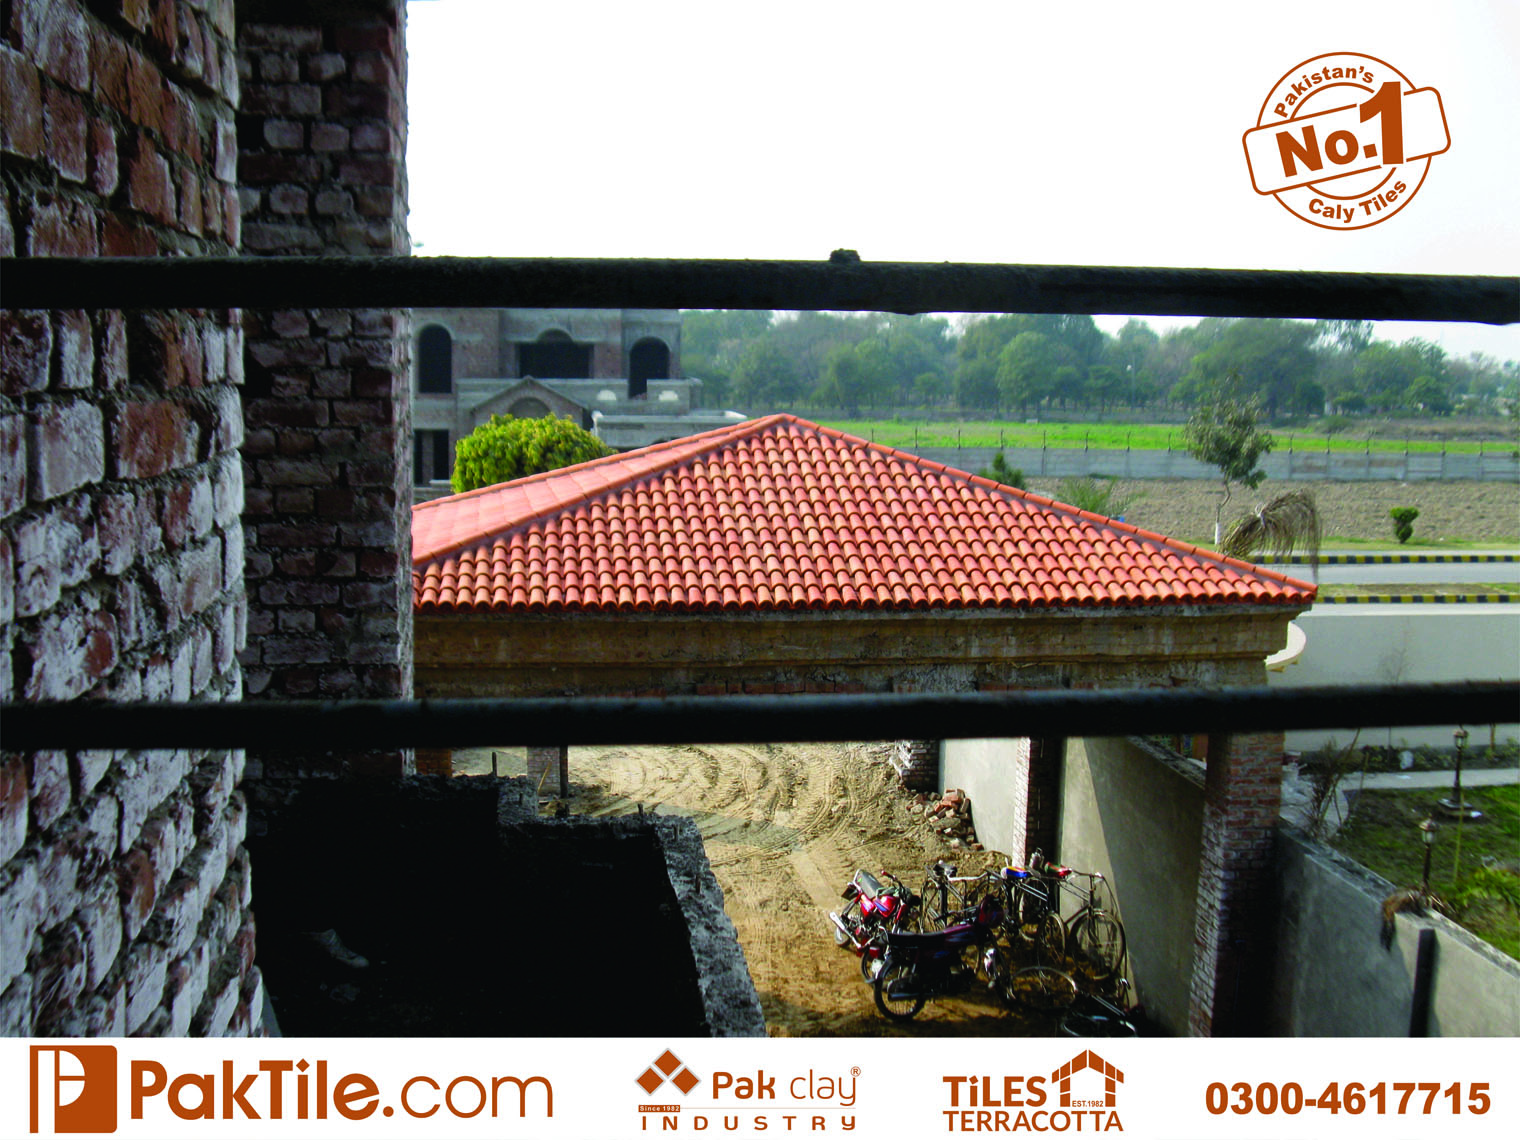 12 Pak clay khaprail house design porcelain shingles ceramic roofing tiles price in pakistan images